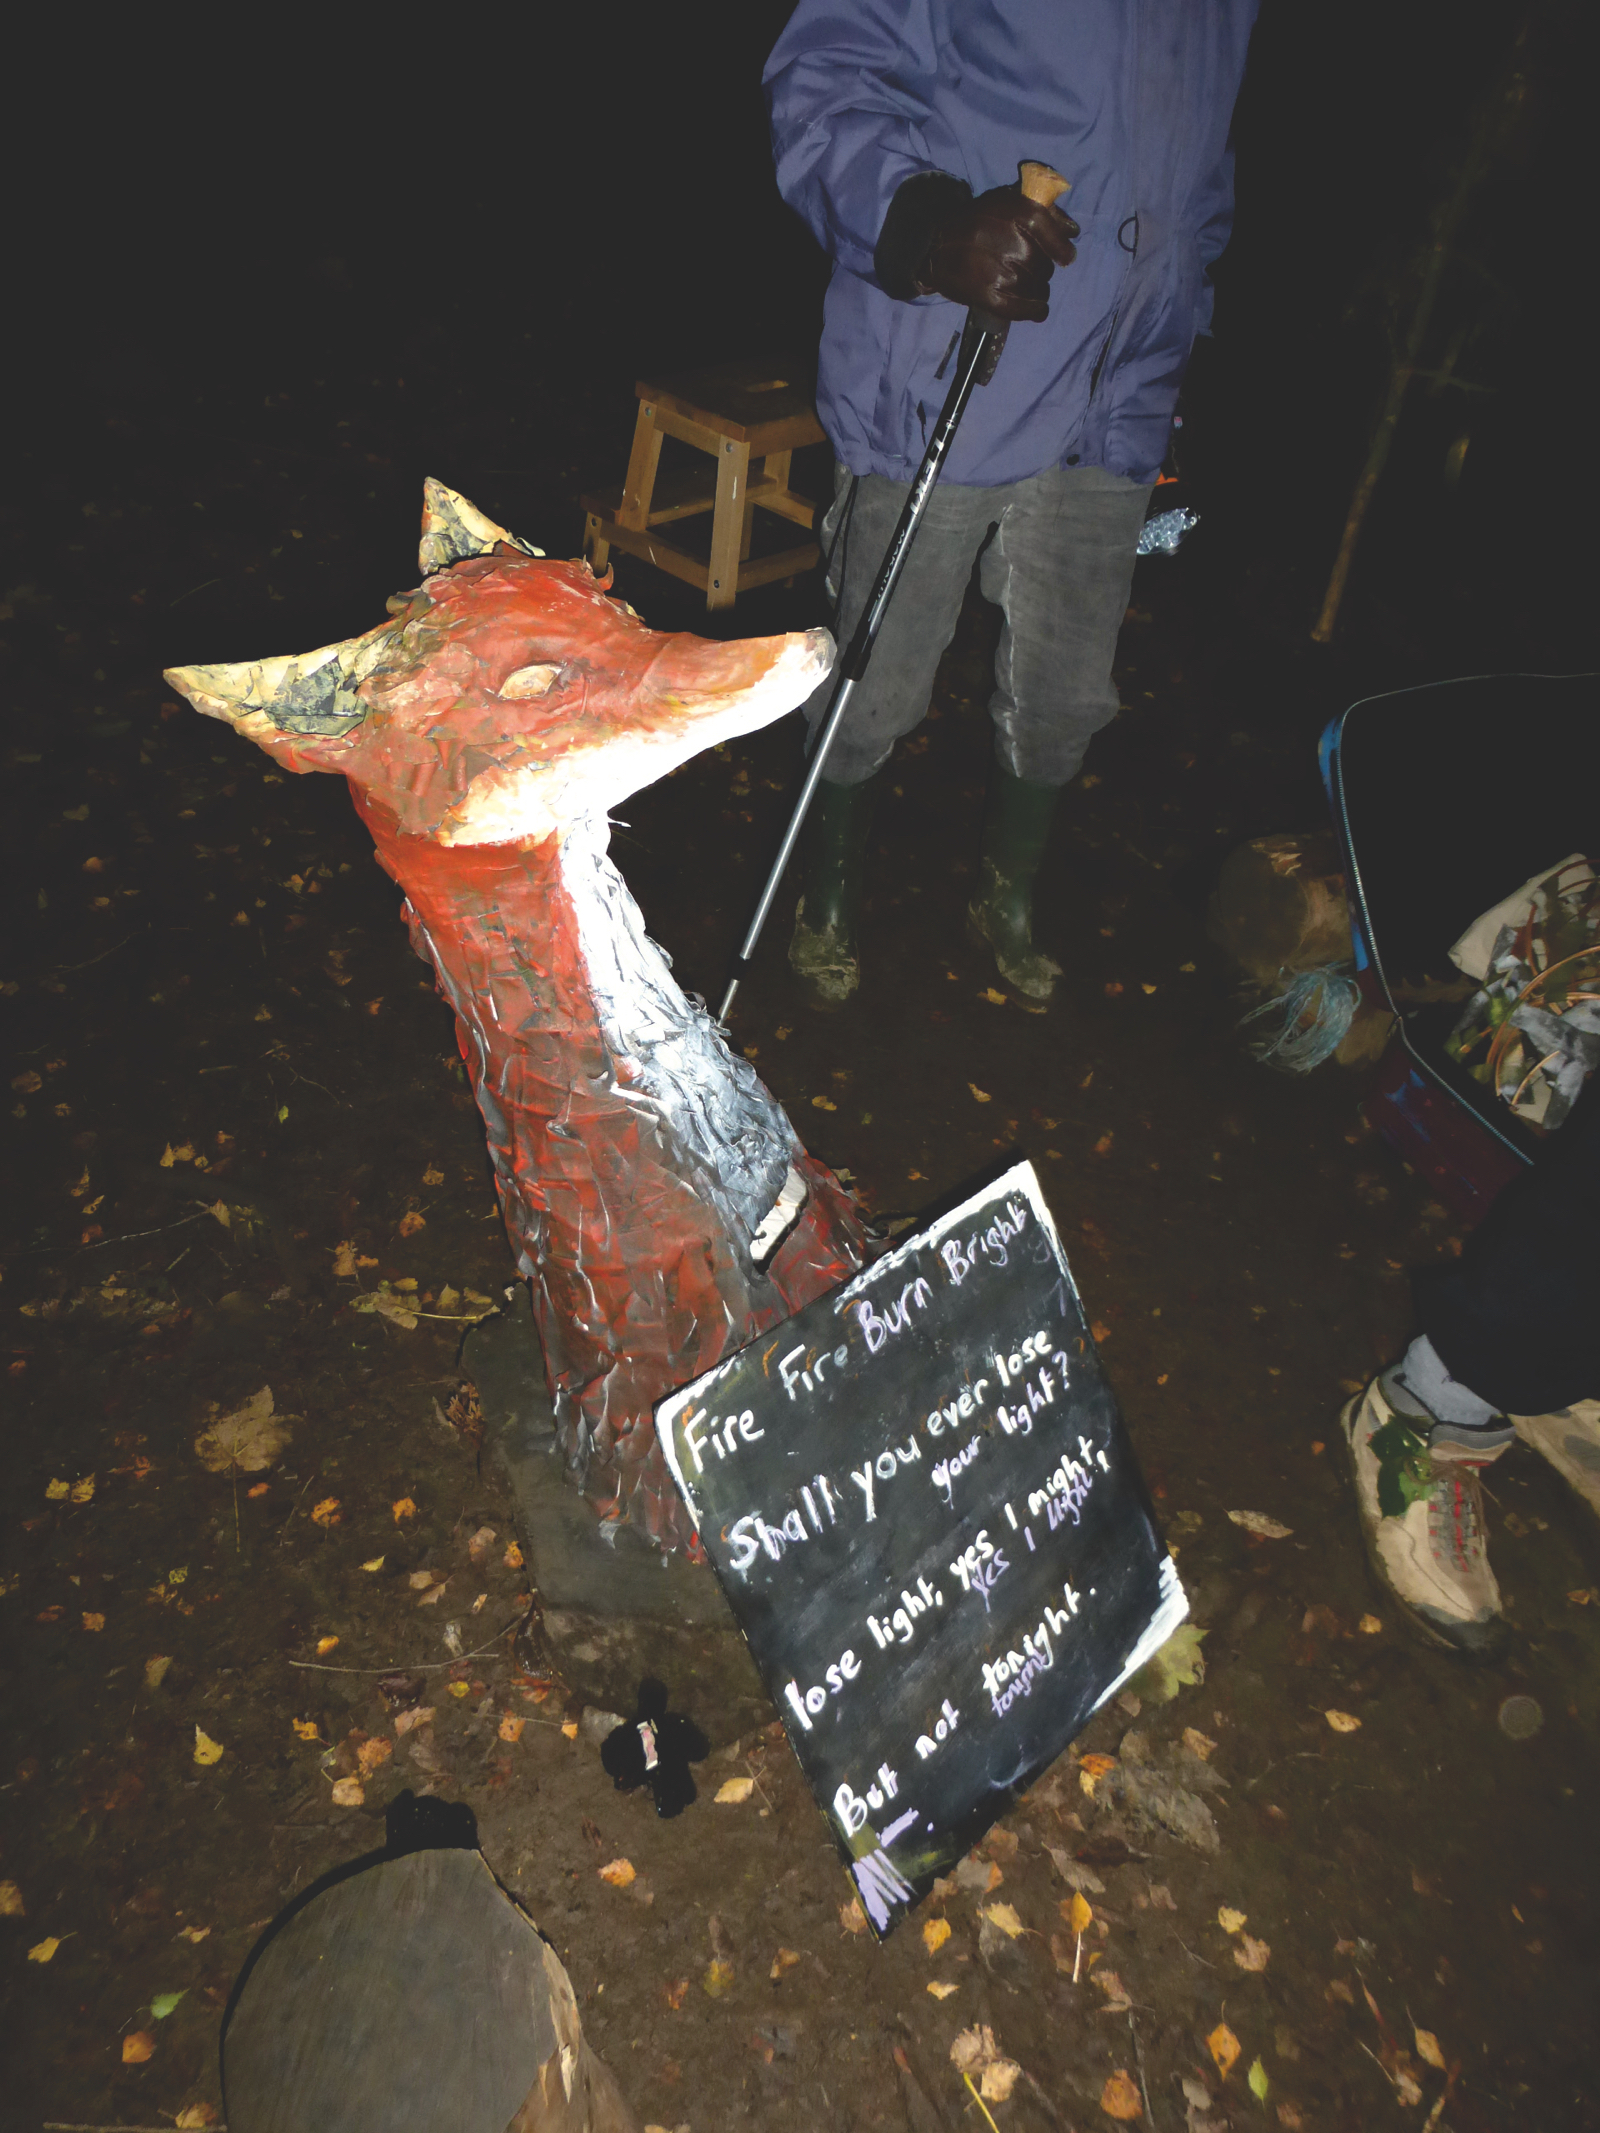 The fox at the campfire